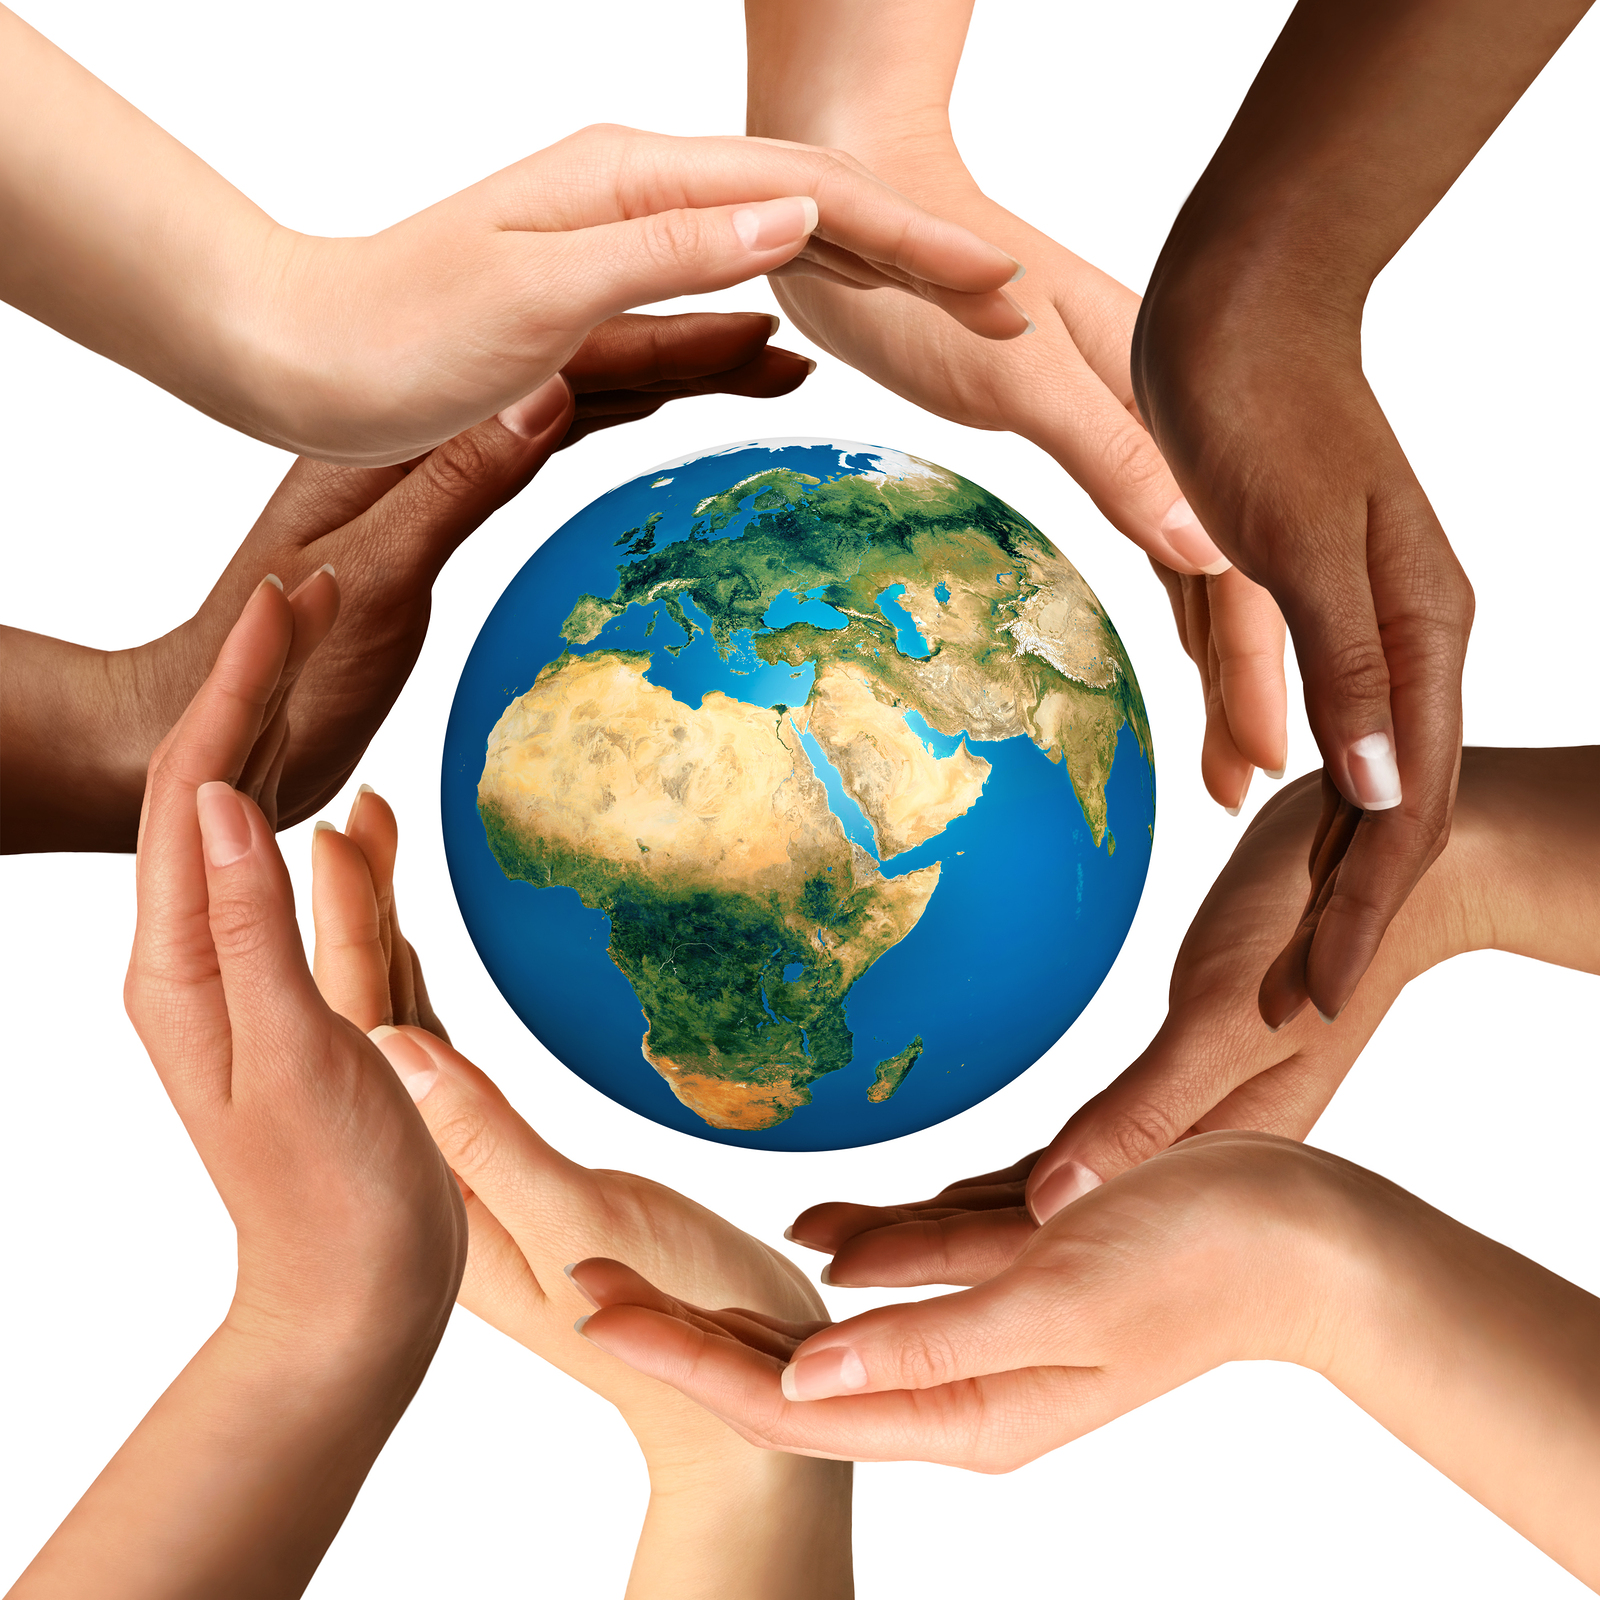 Hands and globe clipart - Clipart Collection | Group of people ...